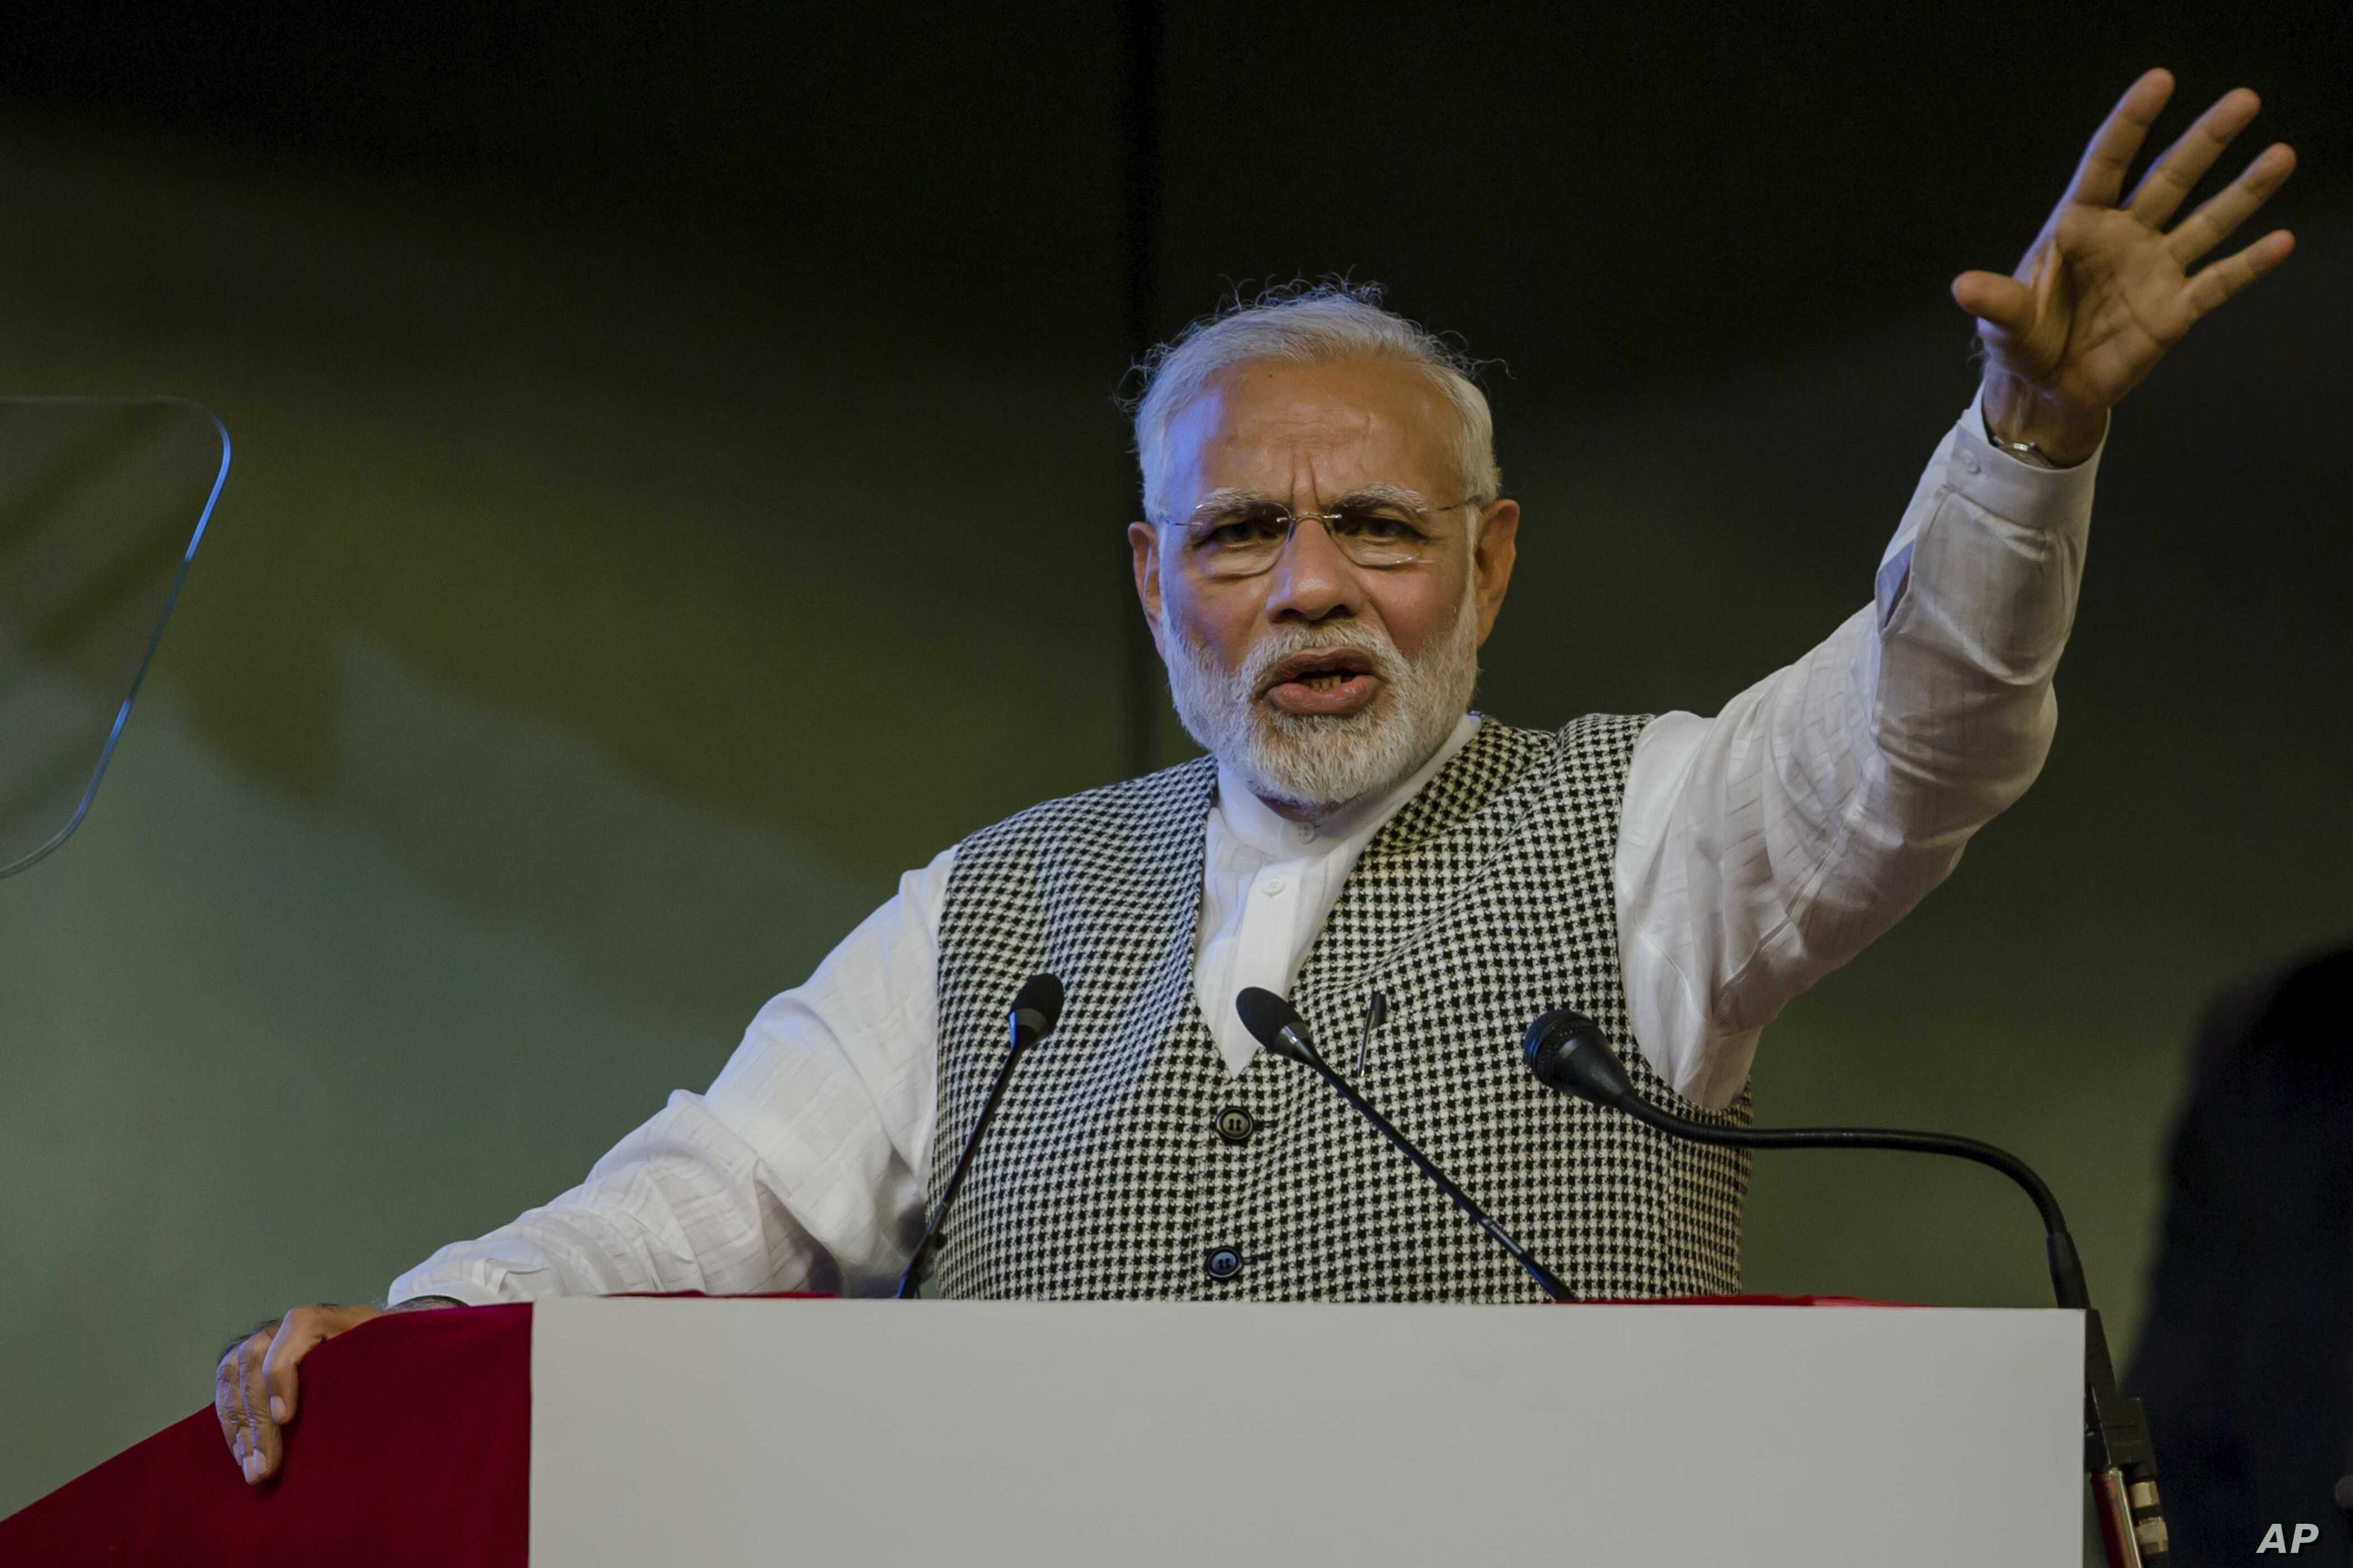 Indian Prime Minister Narendra Modi speaks during a function to inaugurate the Kishanganga hydropower station in Srinagar, Indian-controlled Kashmir, May 19, 2018.